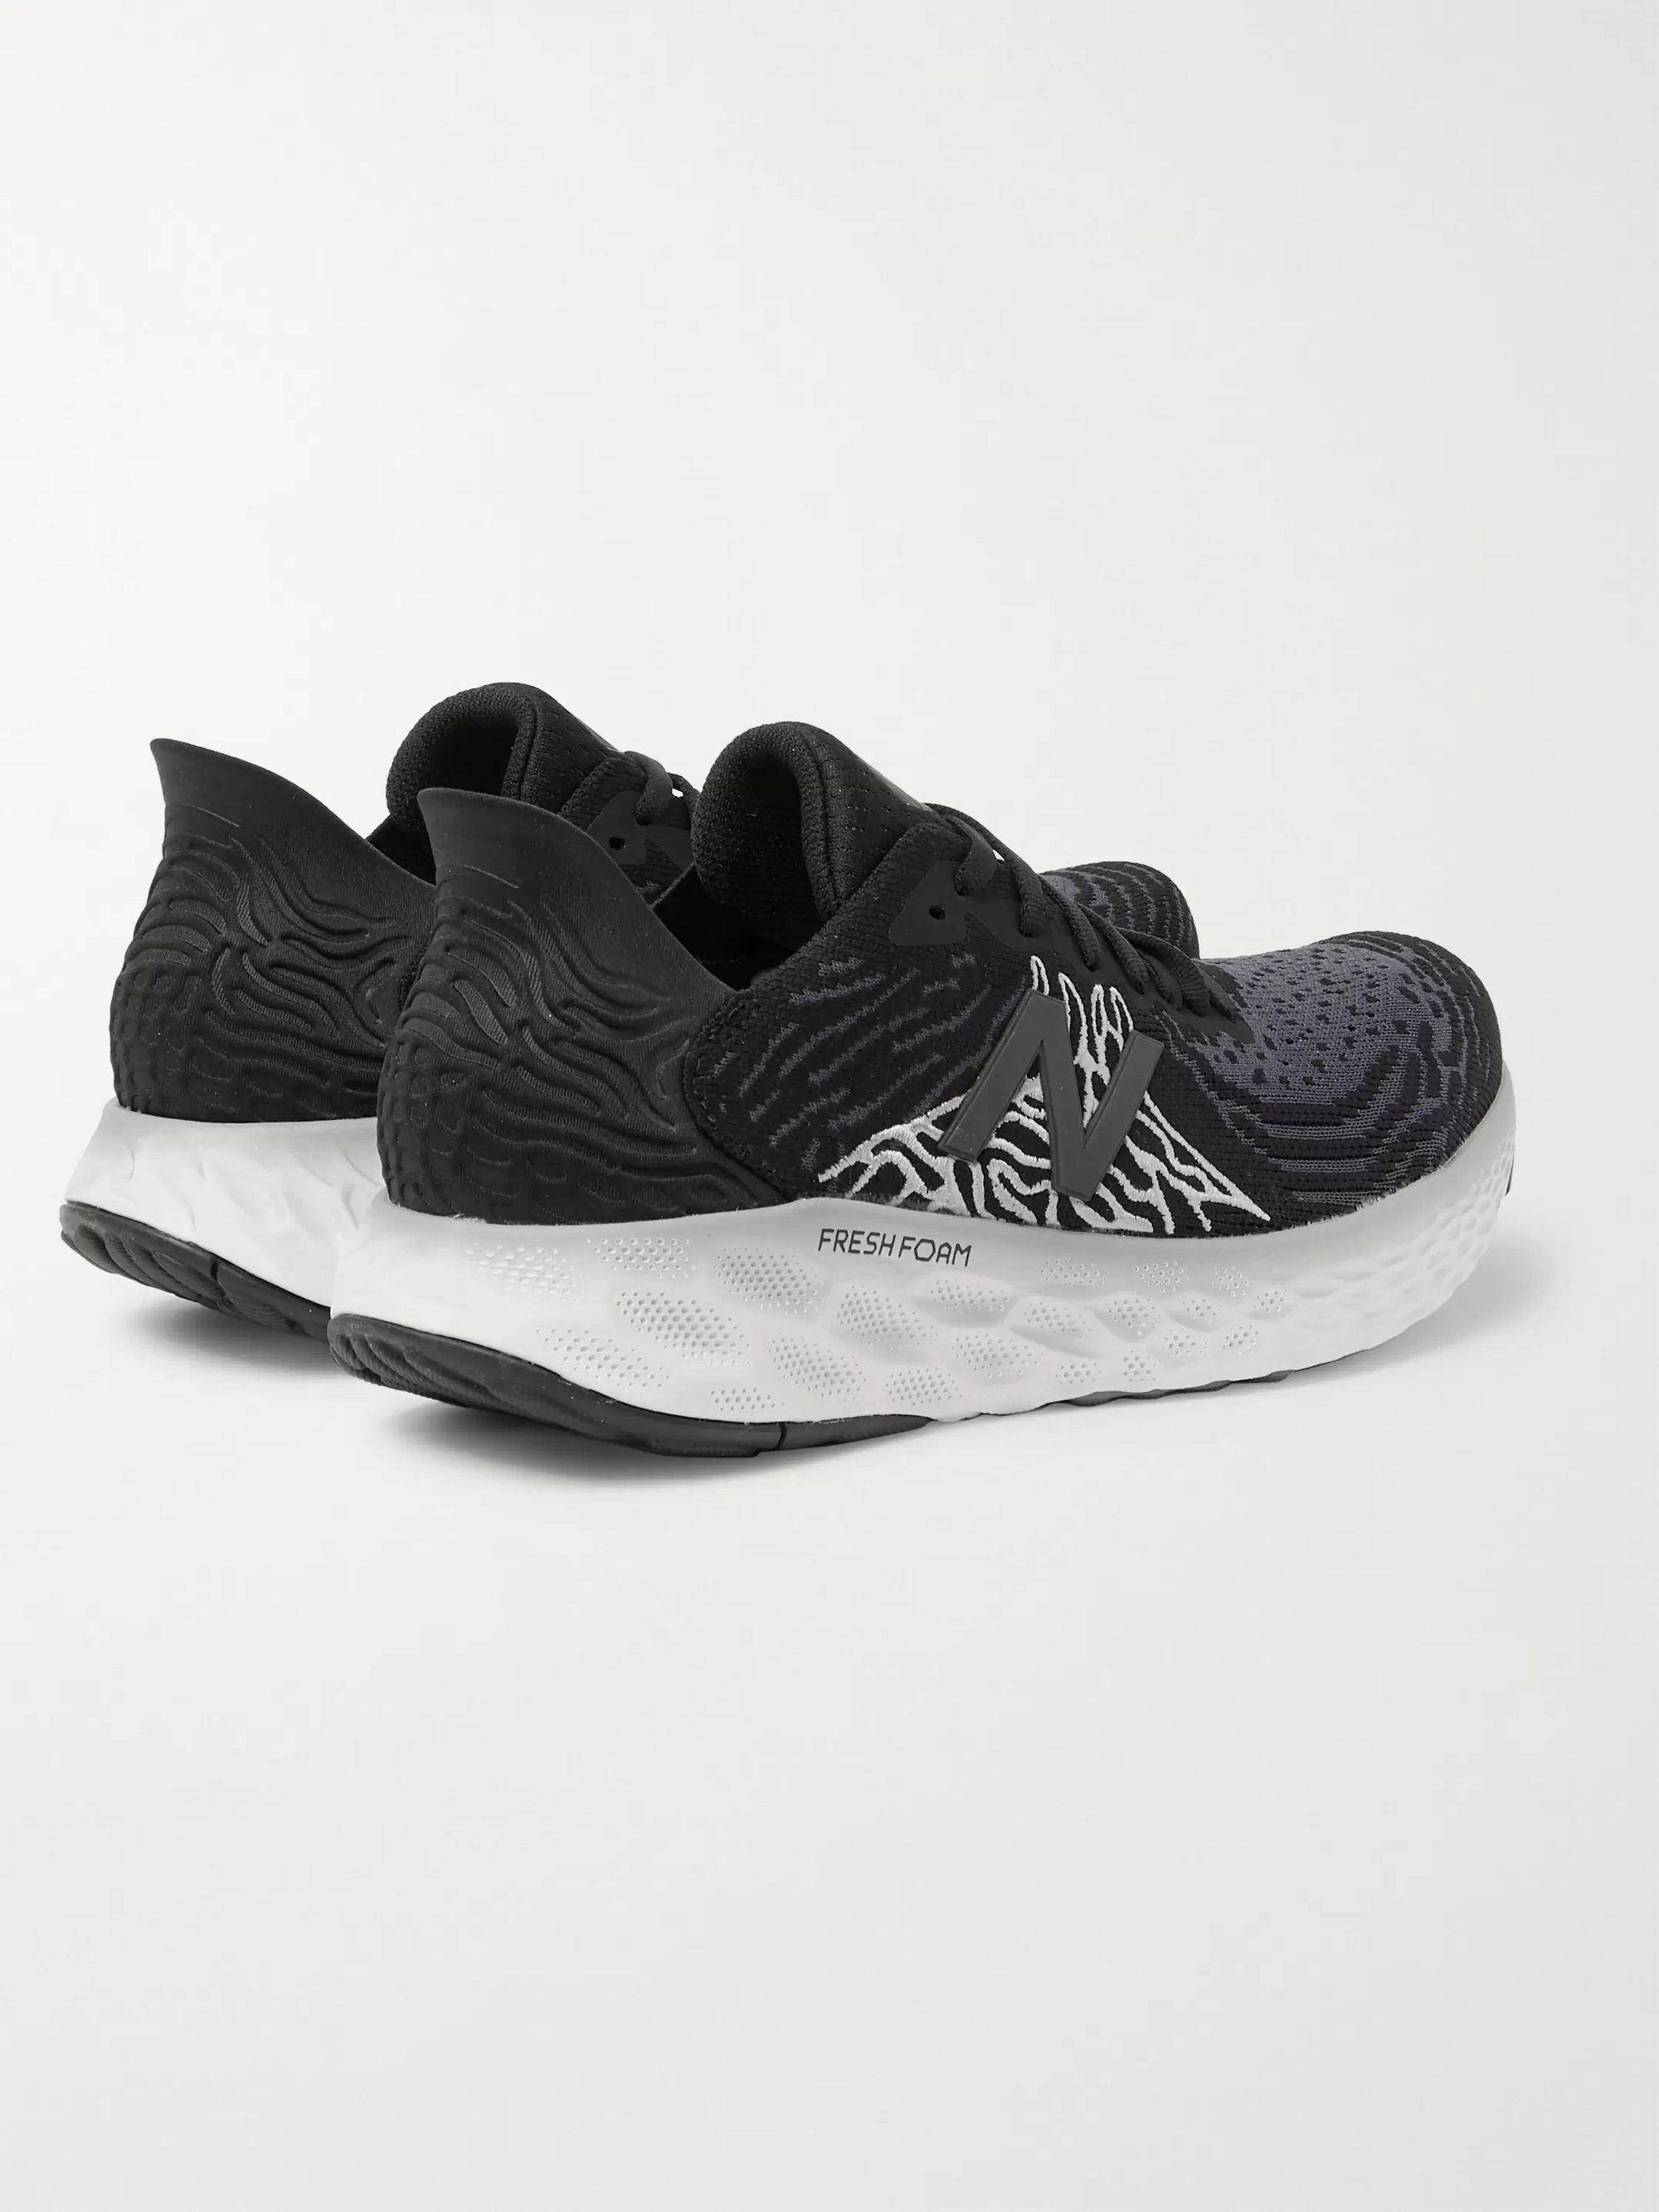 New Balance Fresh Foam Hypoknit Running Sneakers